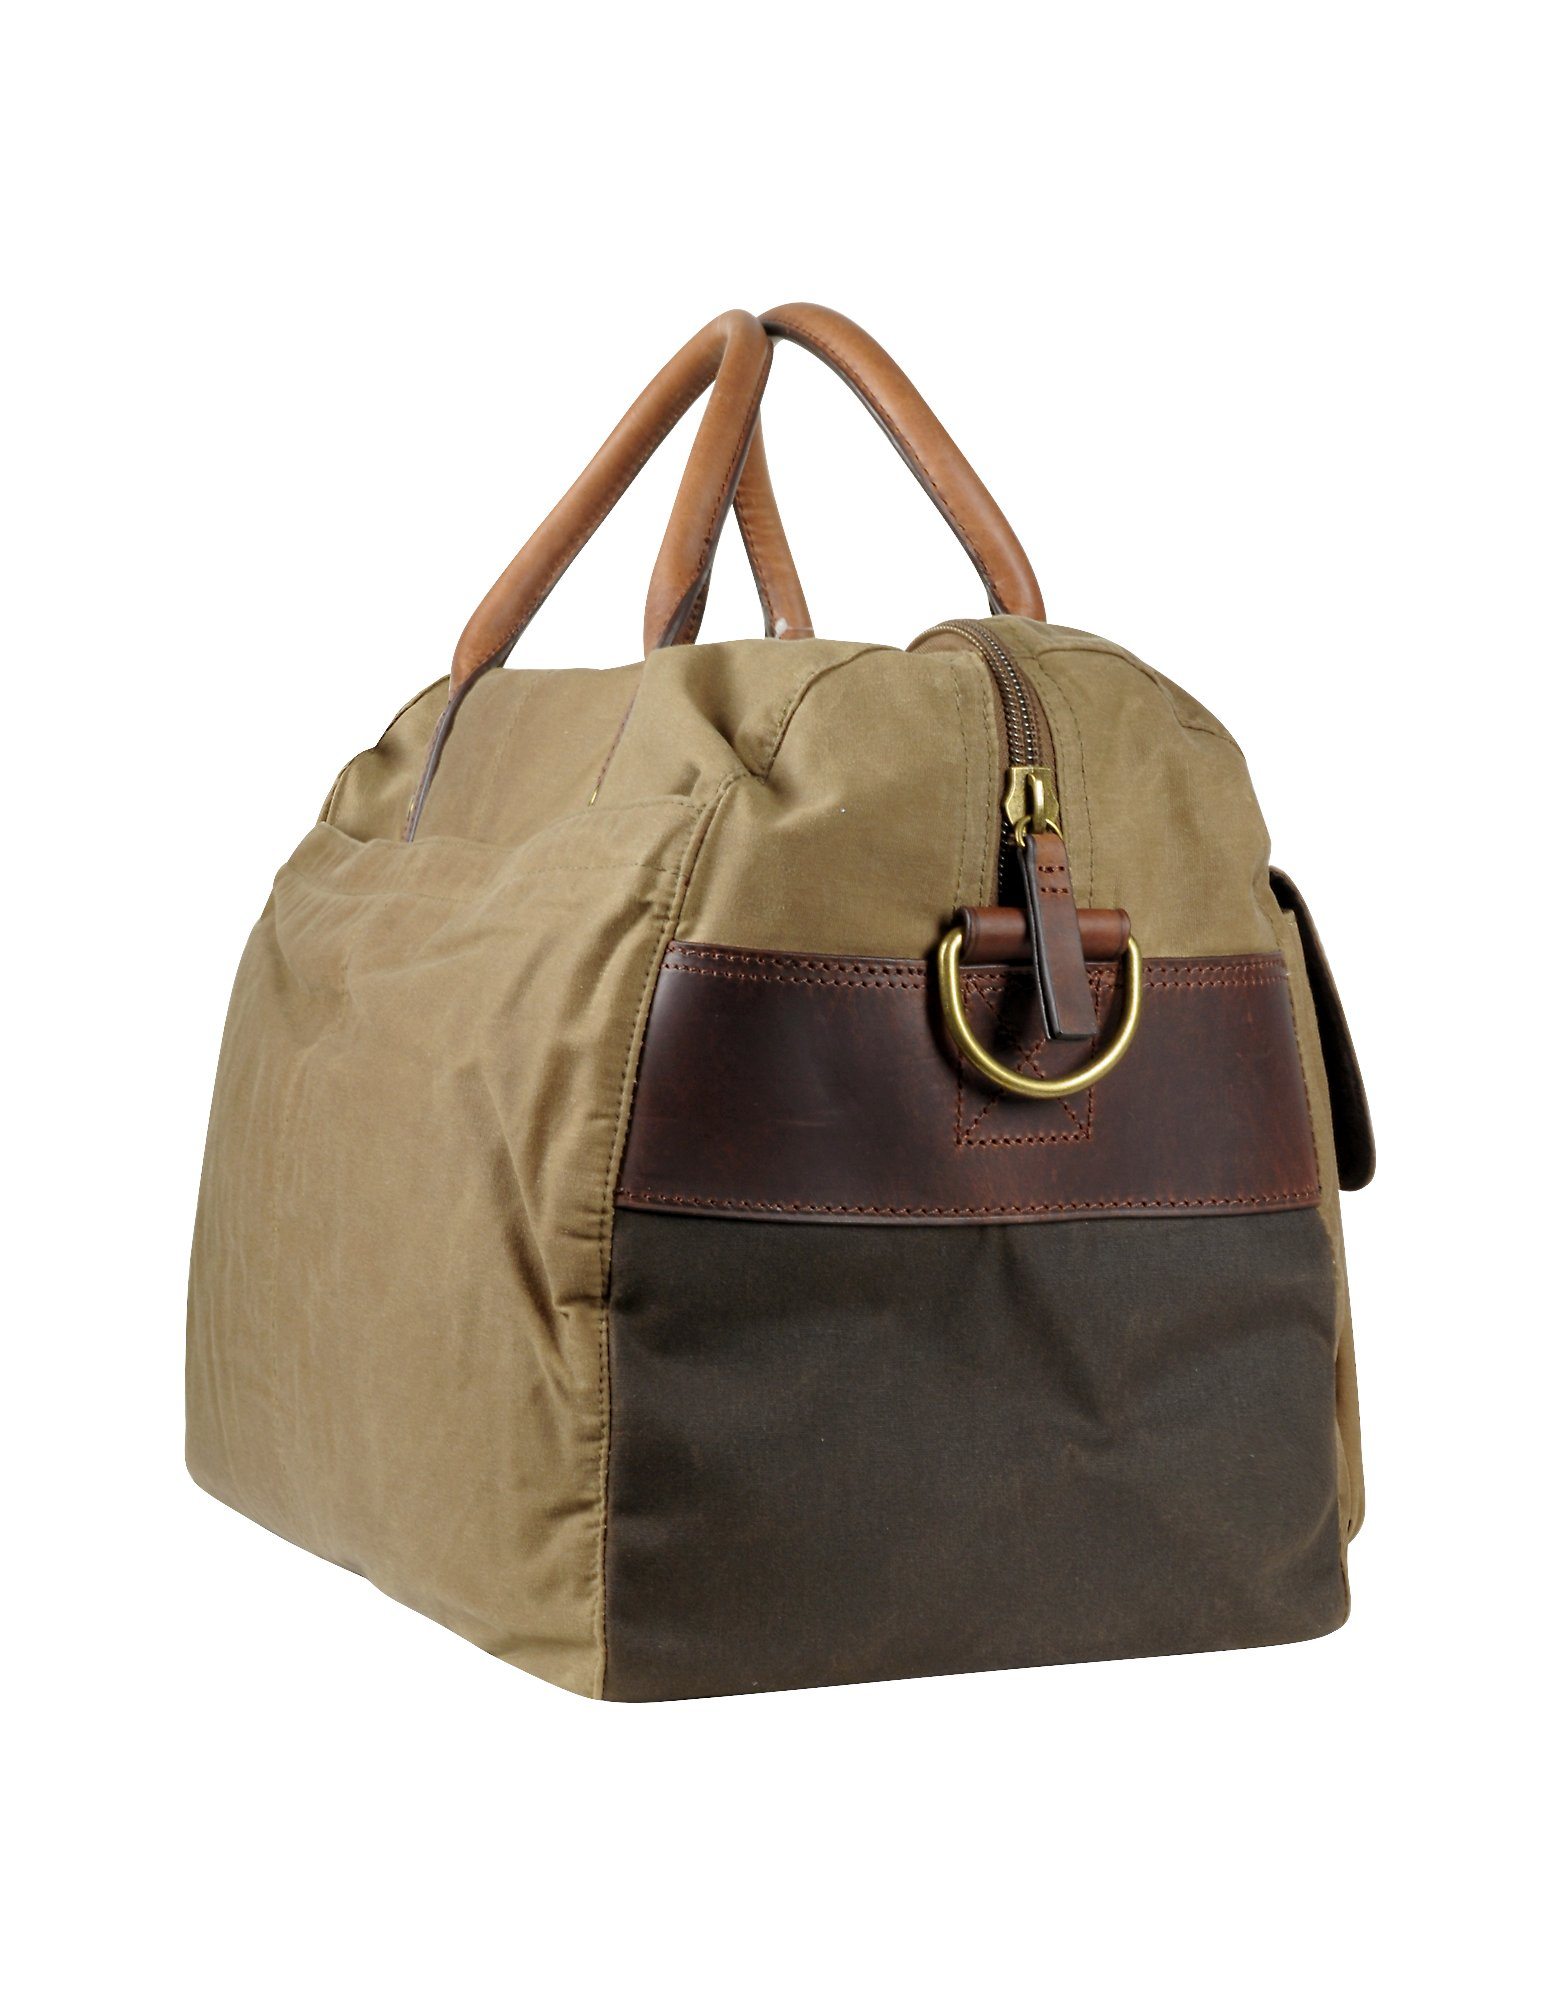 46b84383287a Lyst - Fossil Wagner - Brown Canvas Duffle Bag in Brown for Men